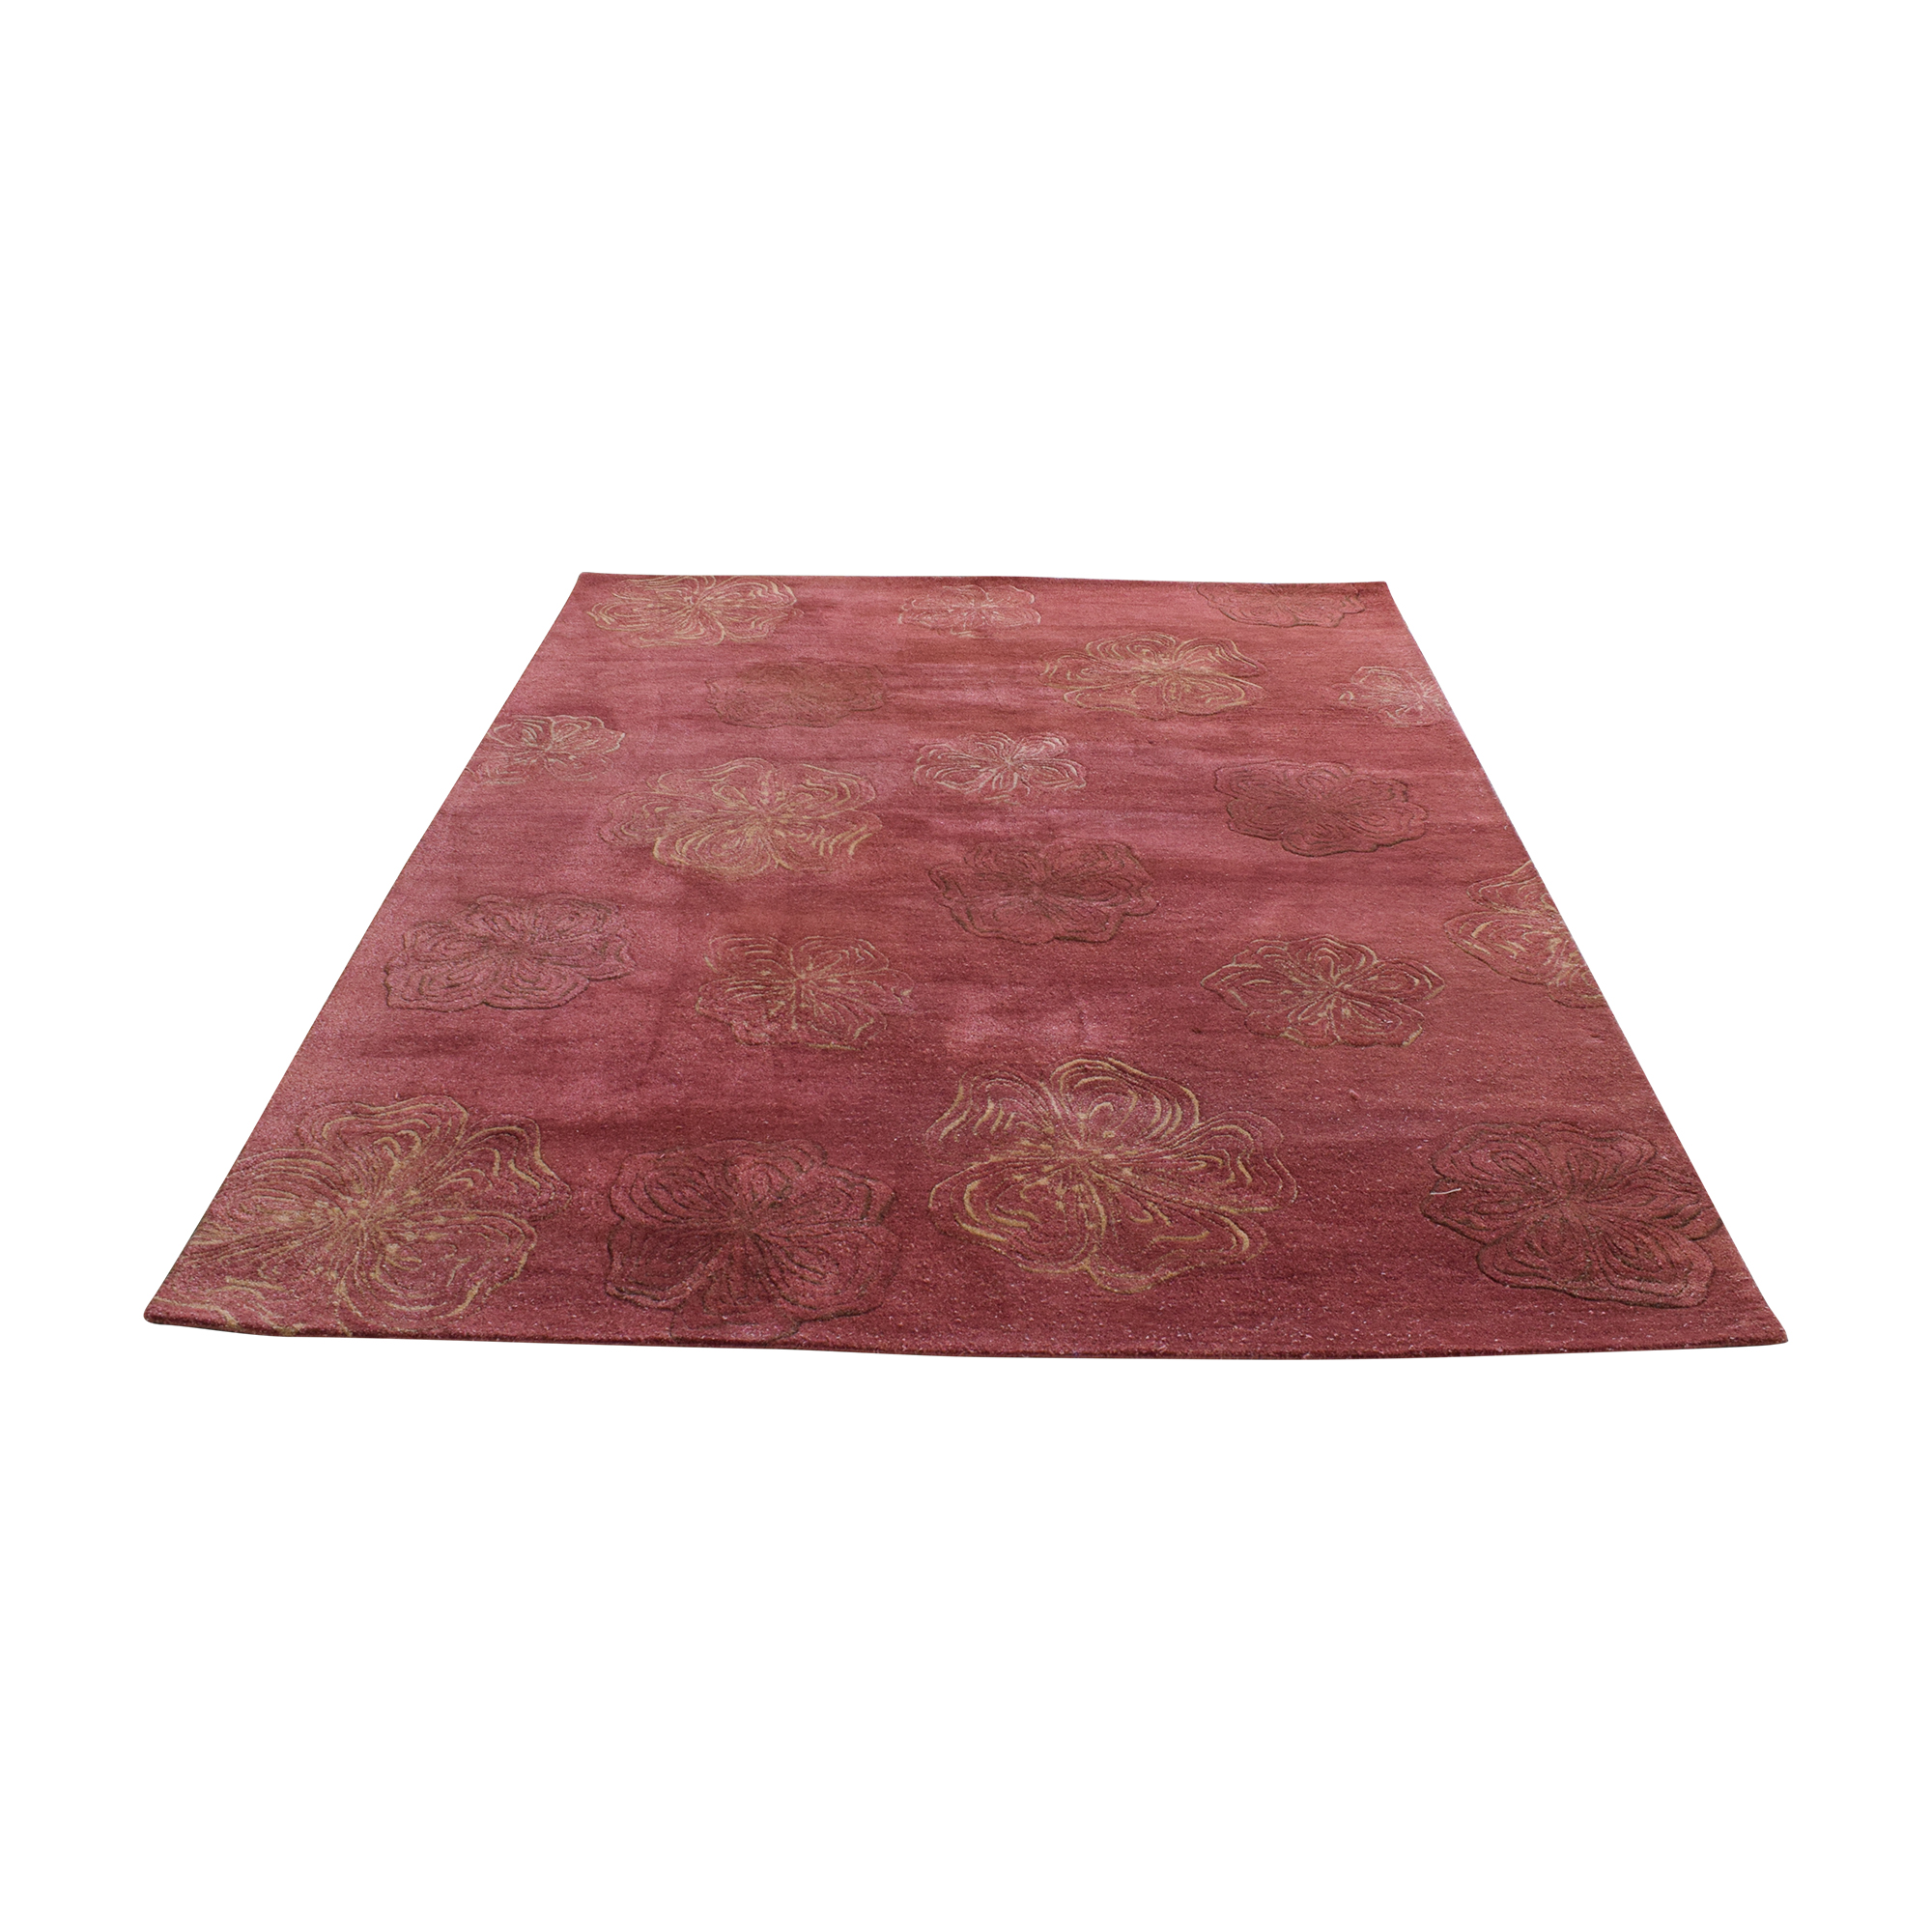 Capel Rugs Capel Desert Plateau Hibiscus Area Rug on sale